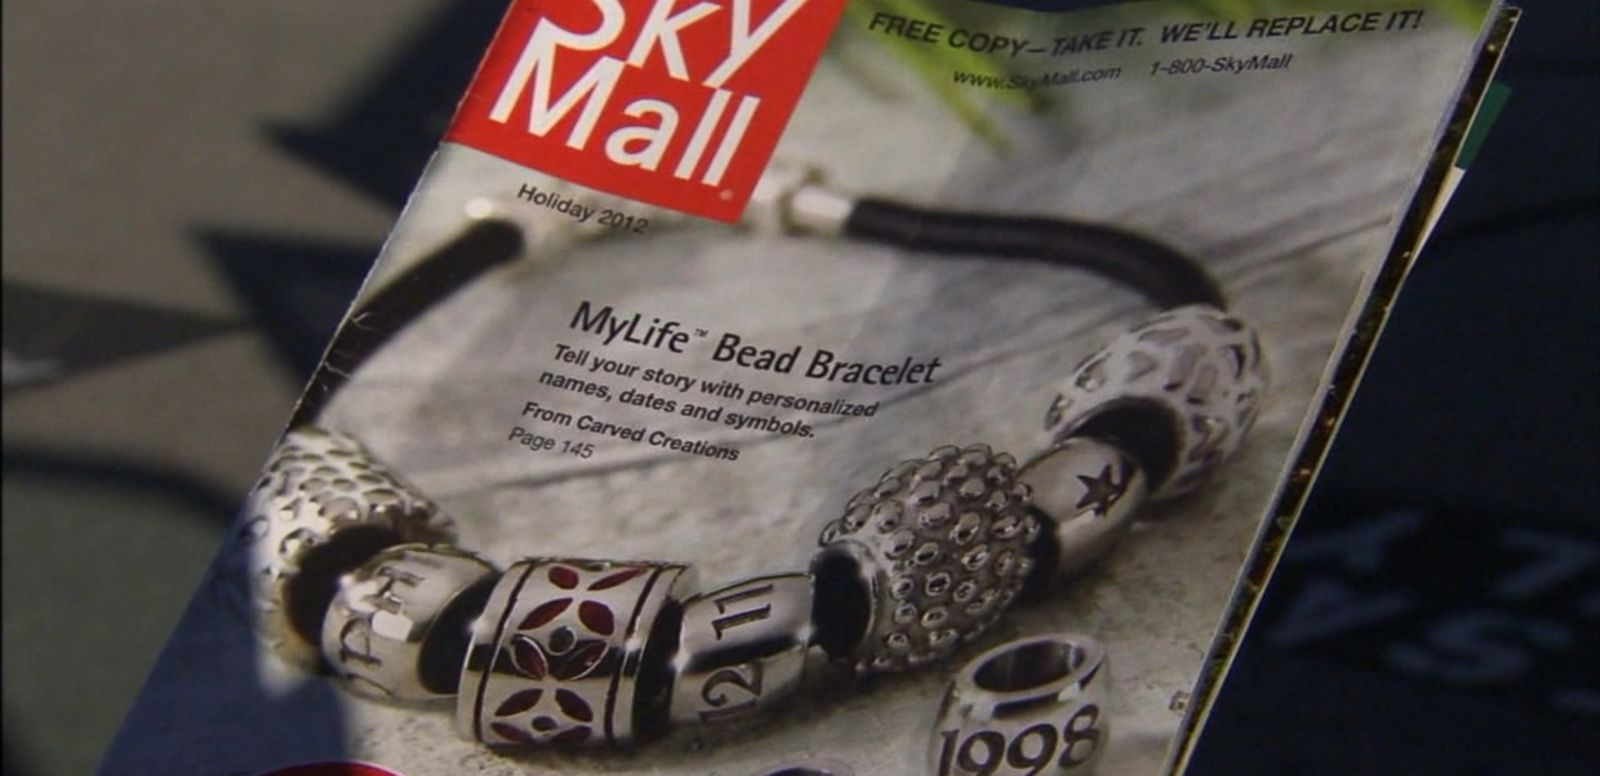 VIDEO: SkyMall declared bankruptcy in January but has since been purchased by a New Jersey-based company planning to revive the print catalog later this year.